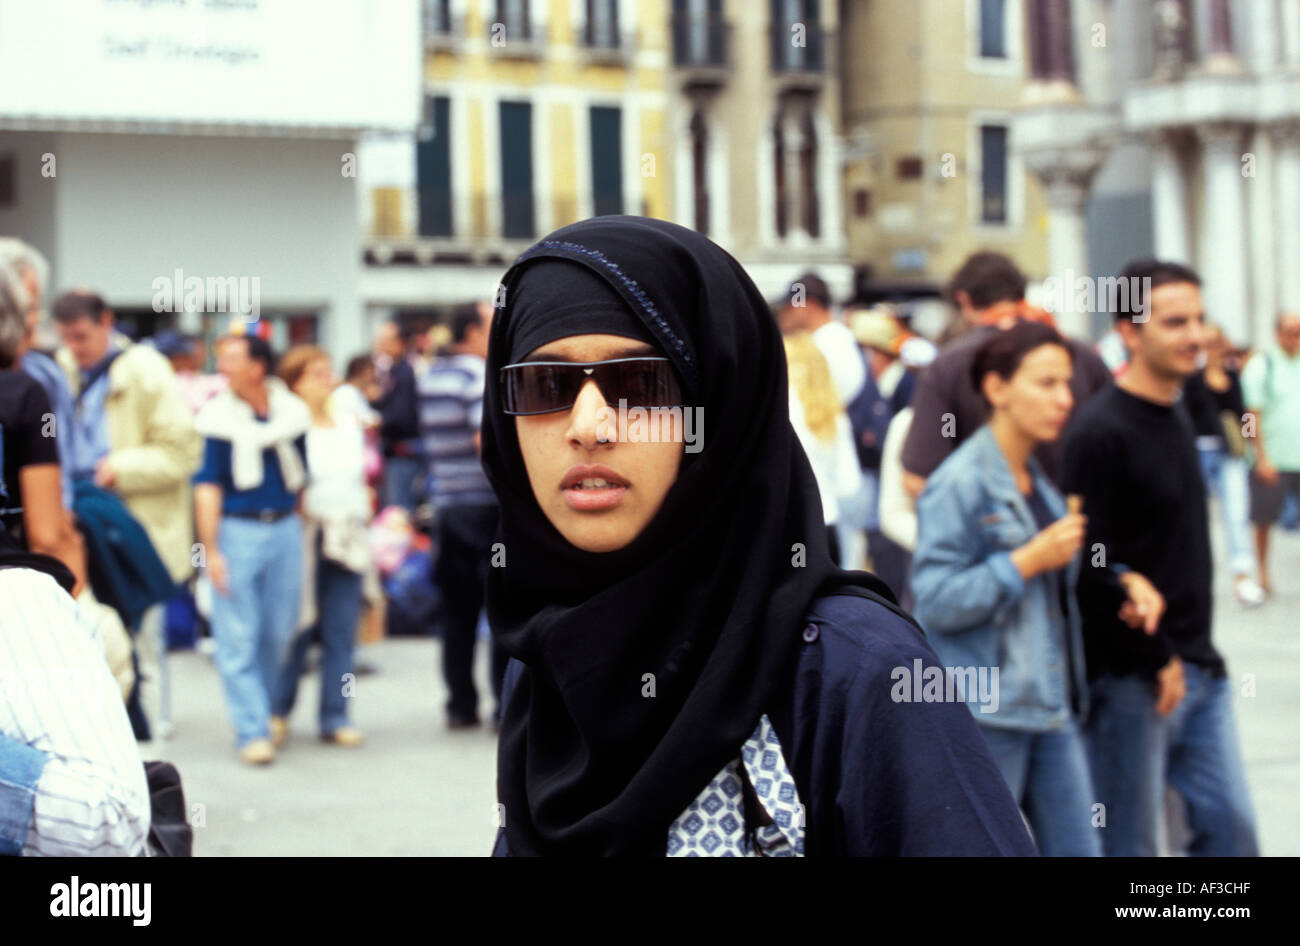 Muslim woman wearing sunglasses and hijab, Piazza San Marco (St. Mark's Square), Venice, Italy - Stock Image